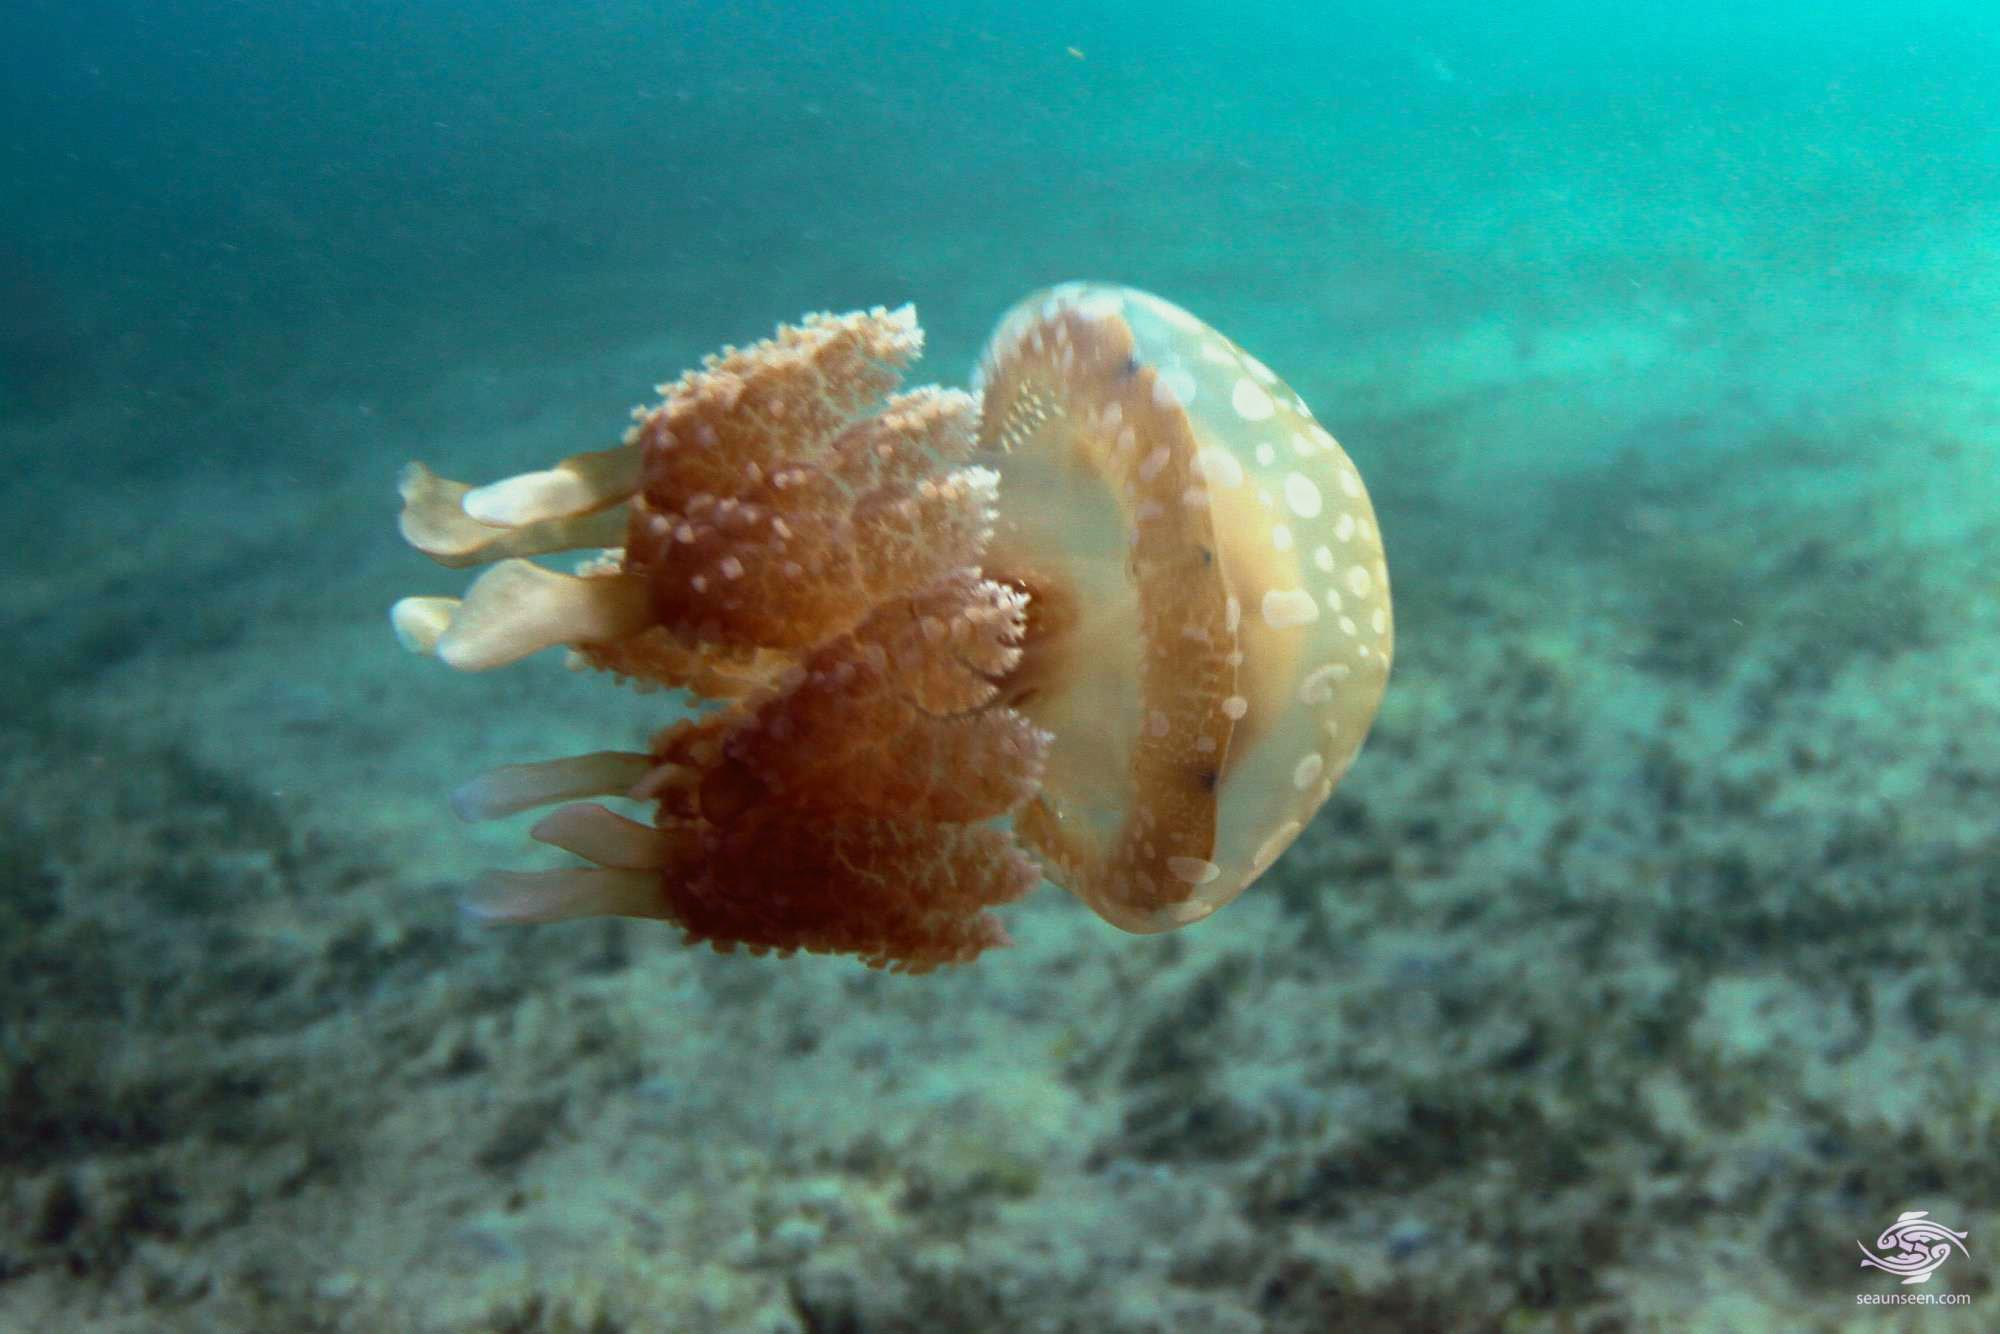 spotted jelly, lagoon jelly, golden medusa, or Papuan jellyfish (Mastigias papua)